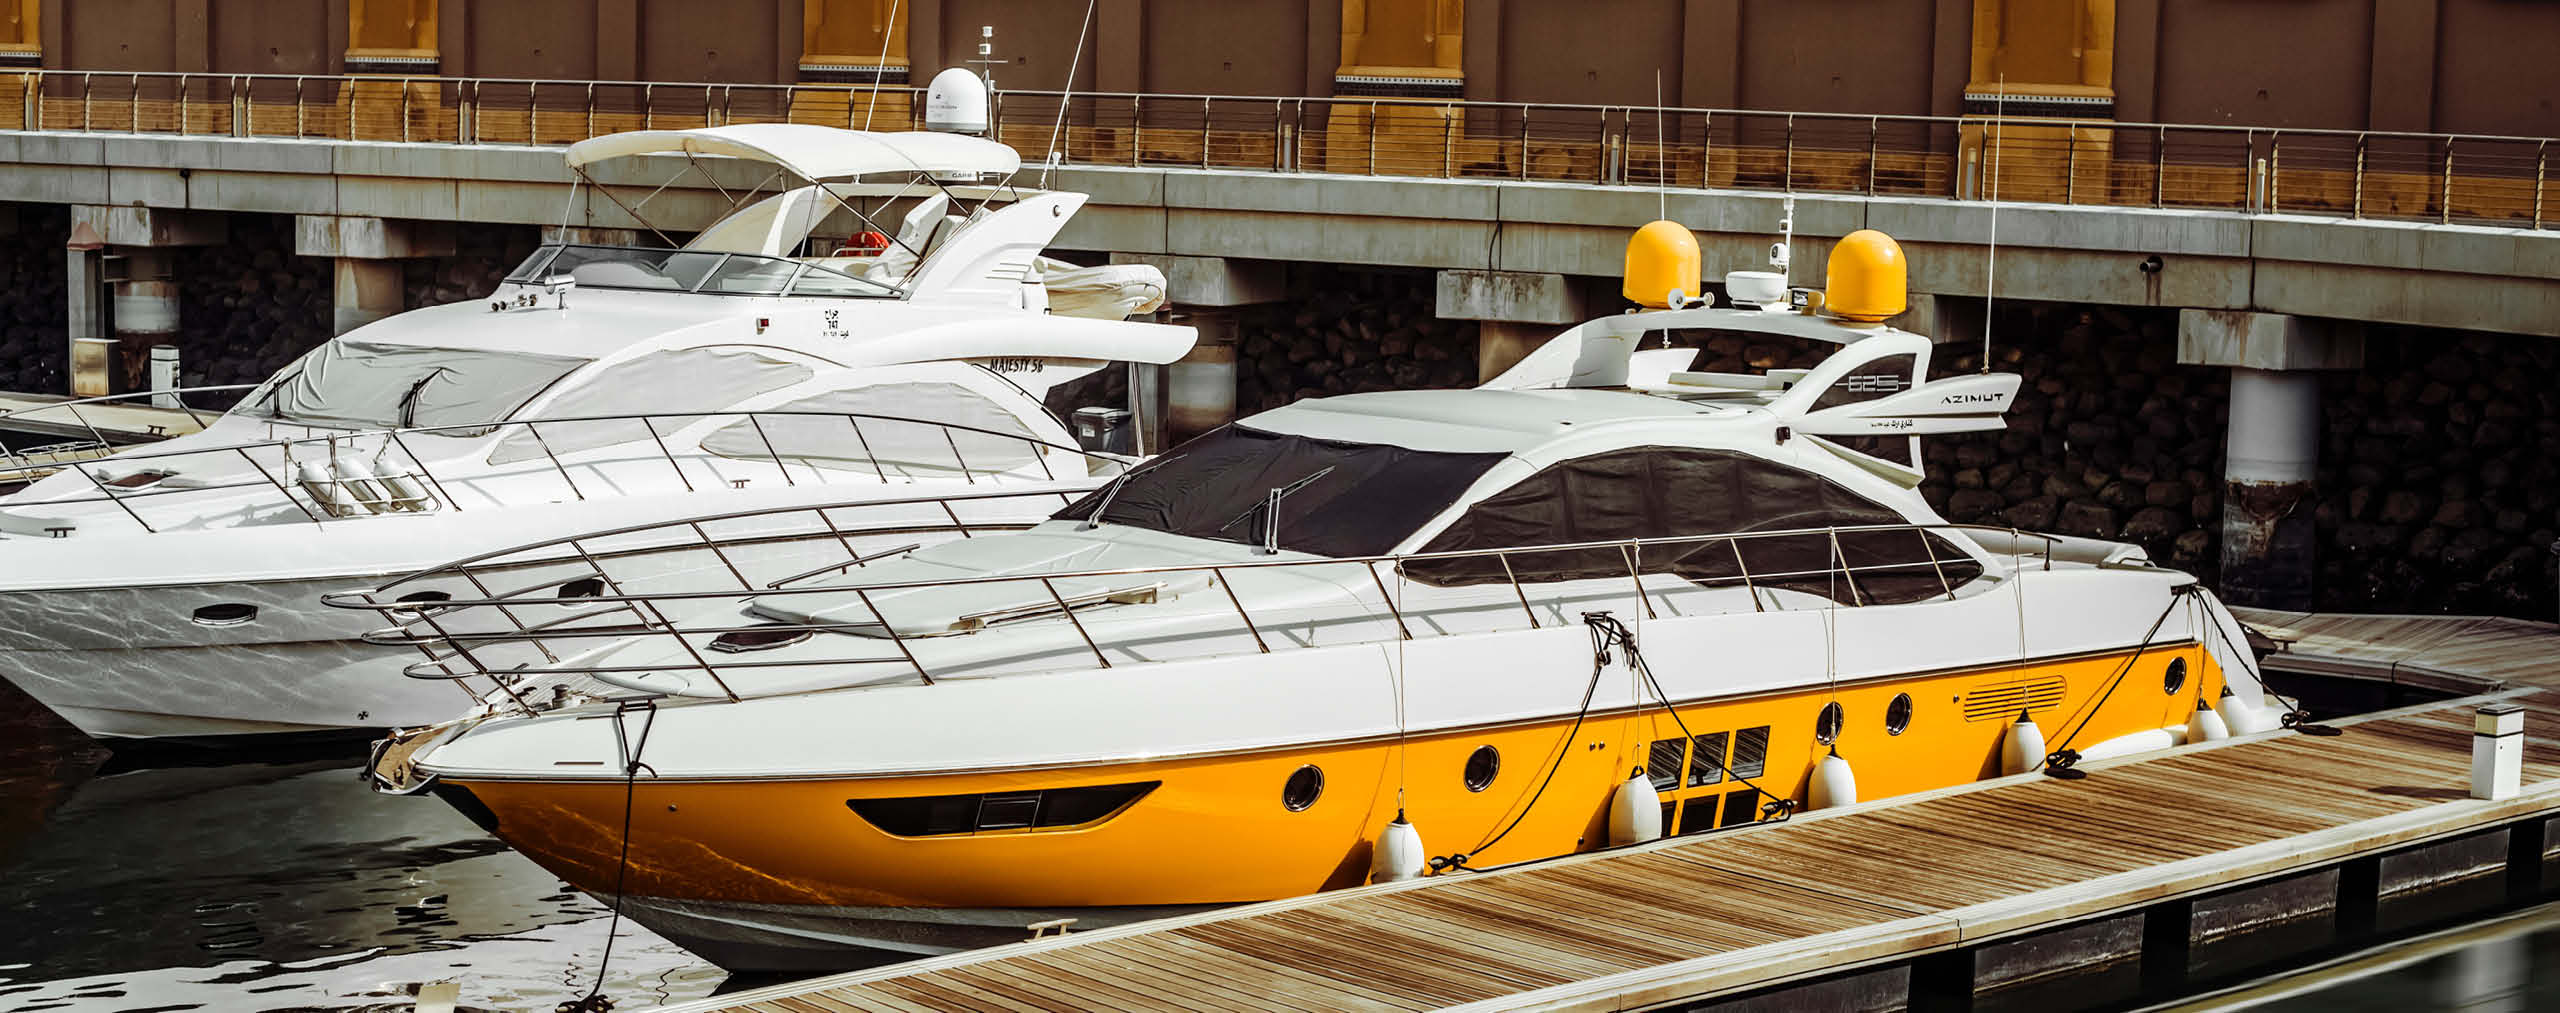 Yachts in the dock